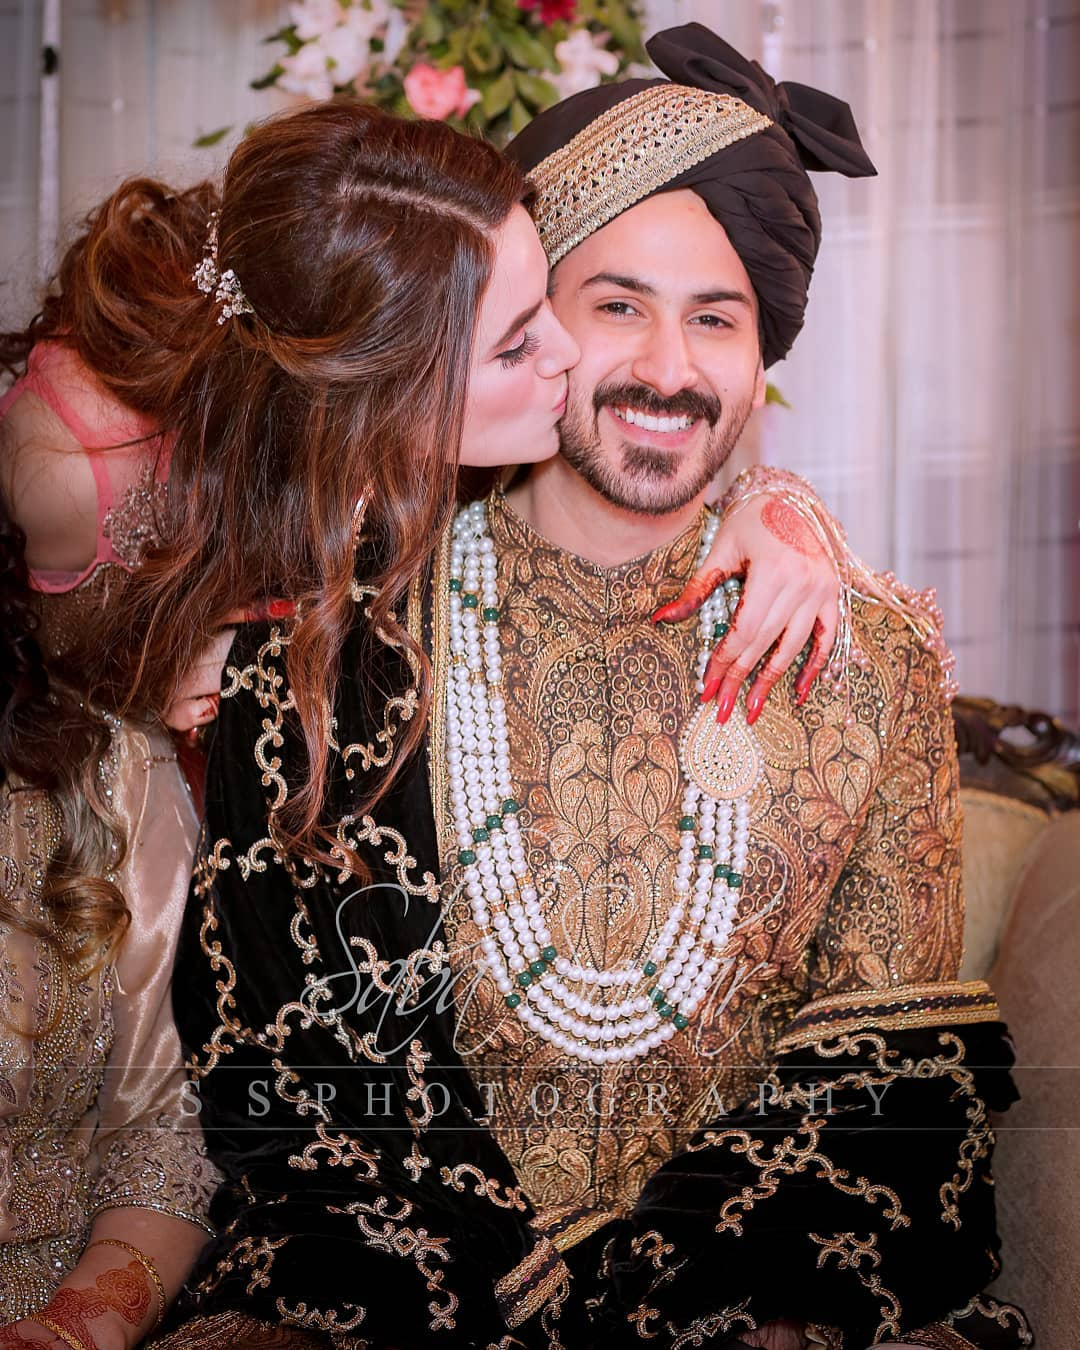 Awesome Photos From Mehndi Event of Actor Shan Baig with his Wife Michelle Saifee